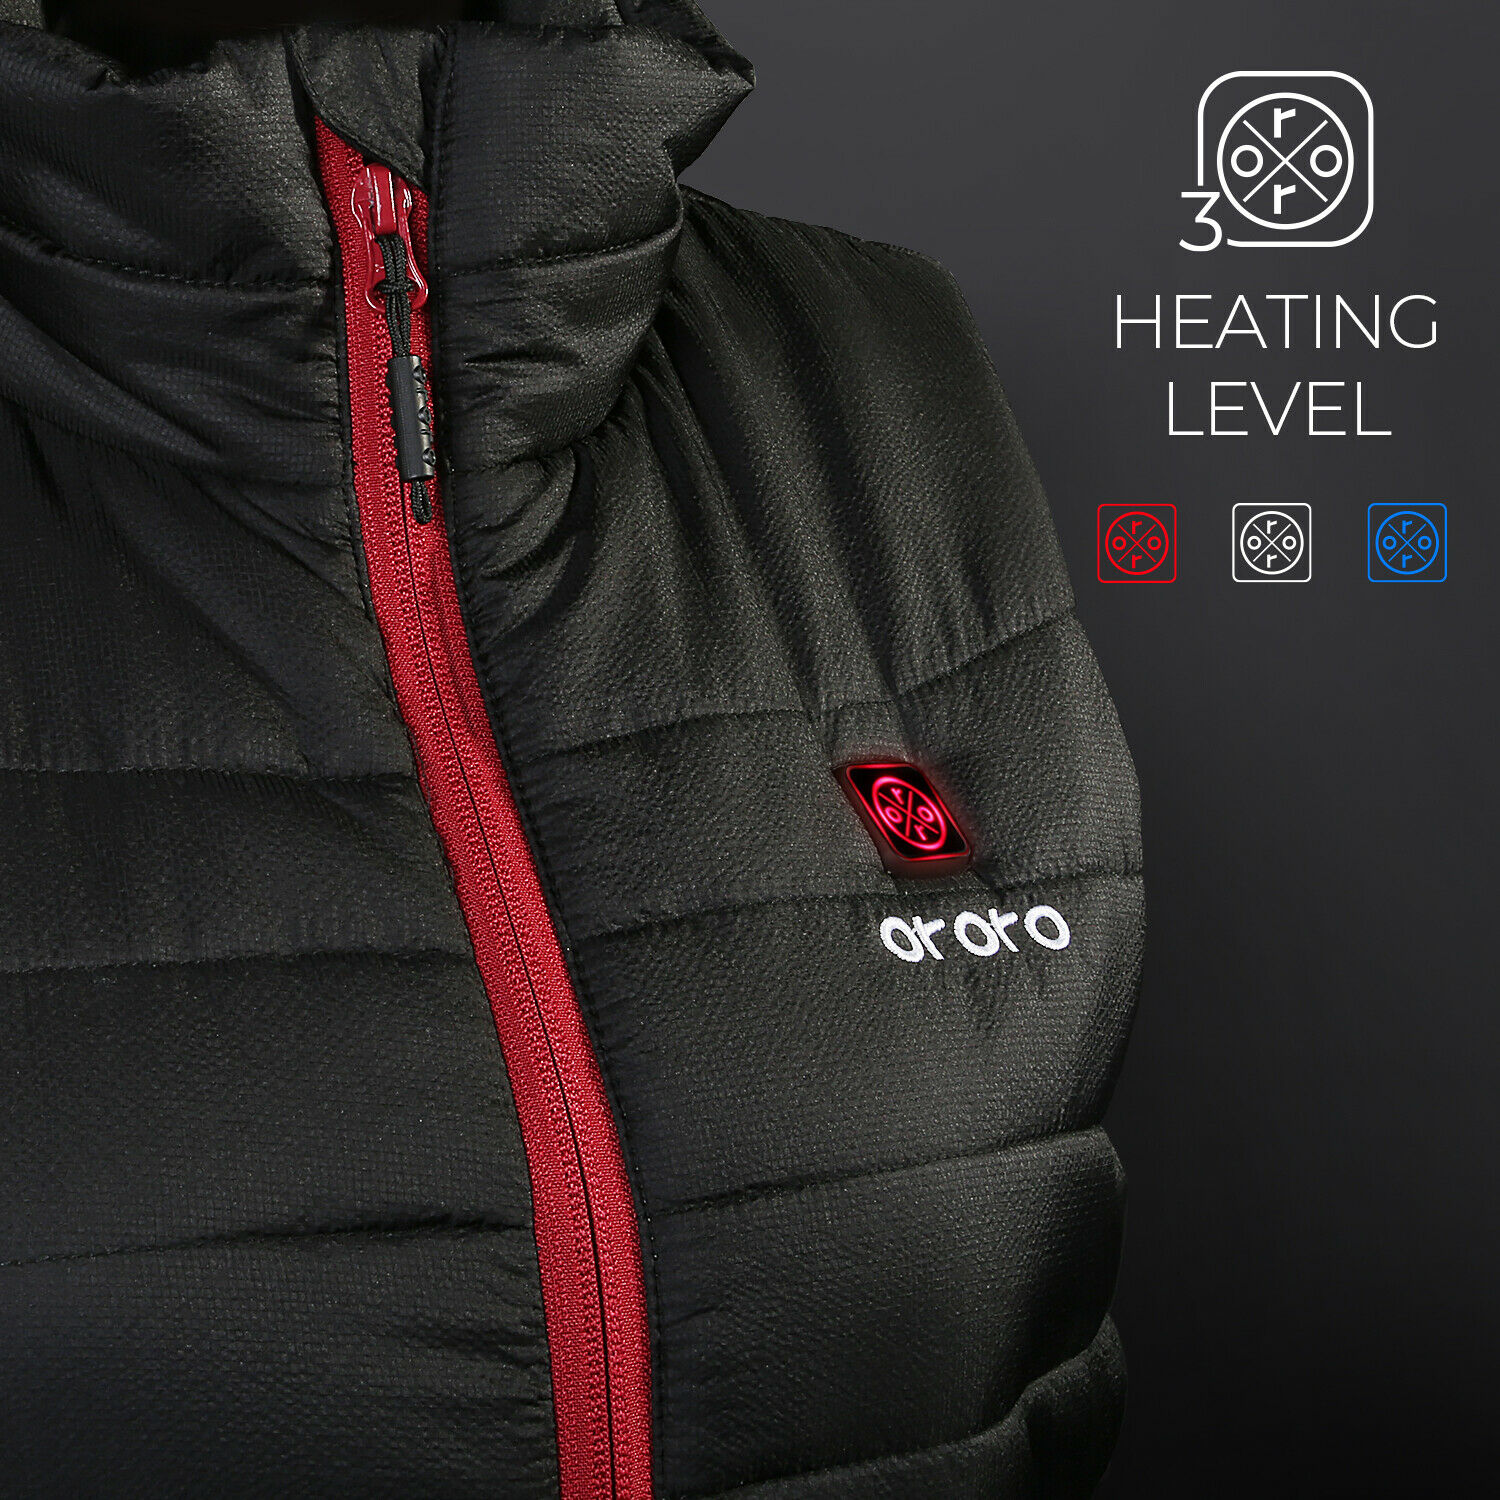 ORORO Women Heated Vest With Battery Water Resistant Sleevel